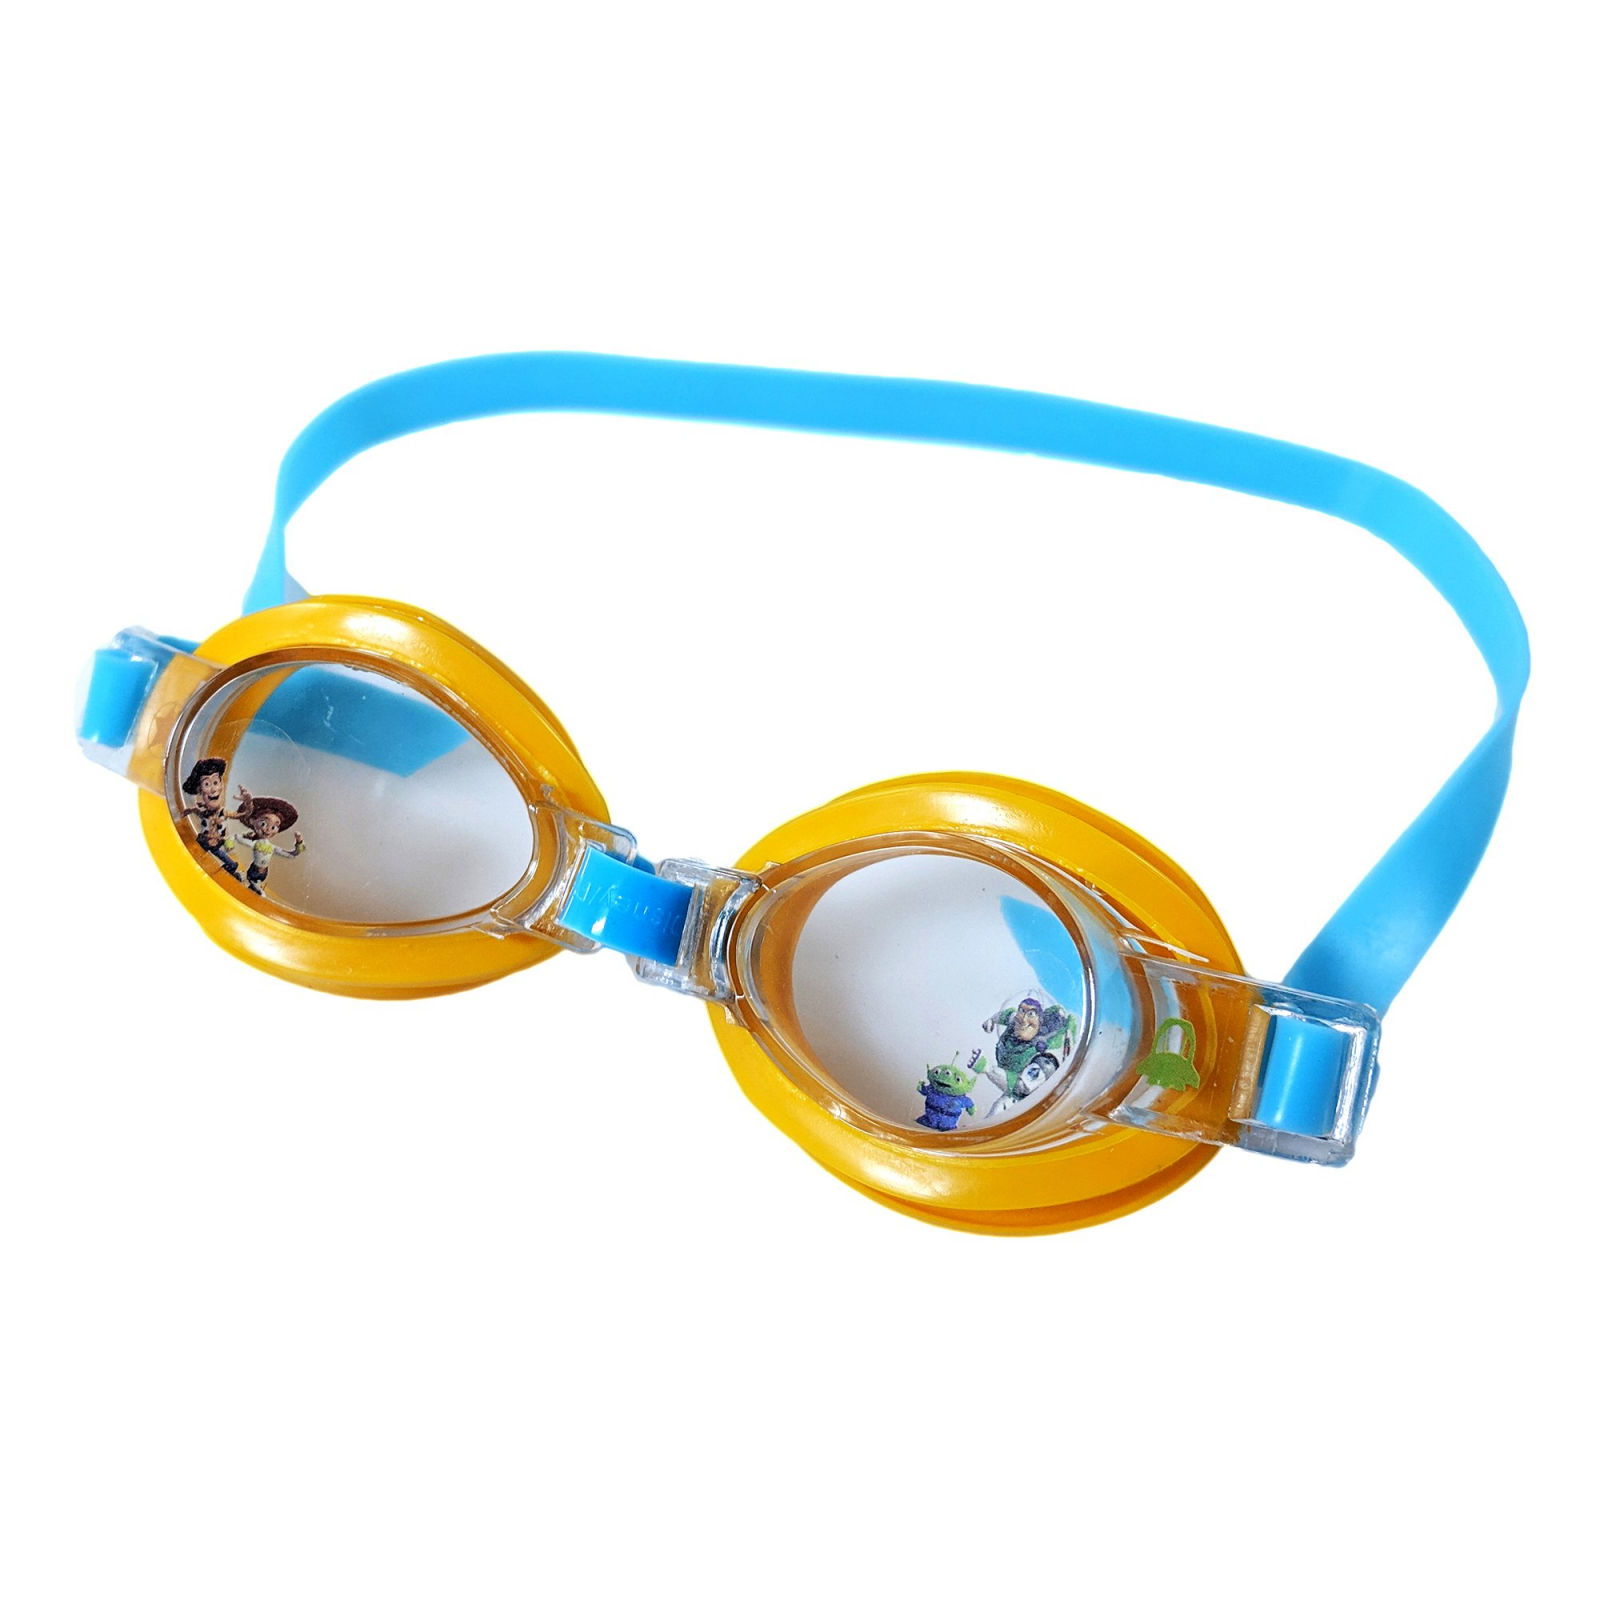 Disney Pixar Toy Story 4 Characters Swim Goggles Pool Toy